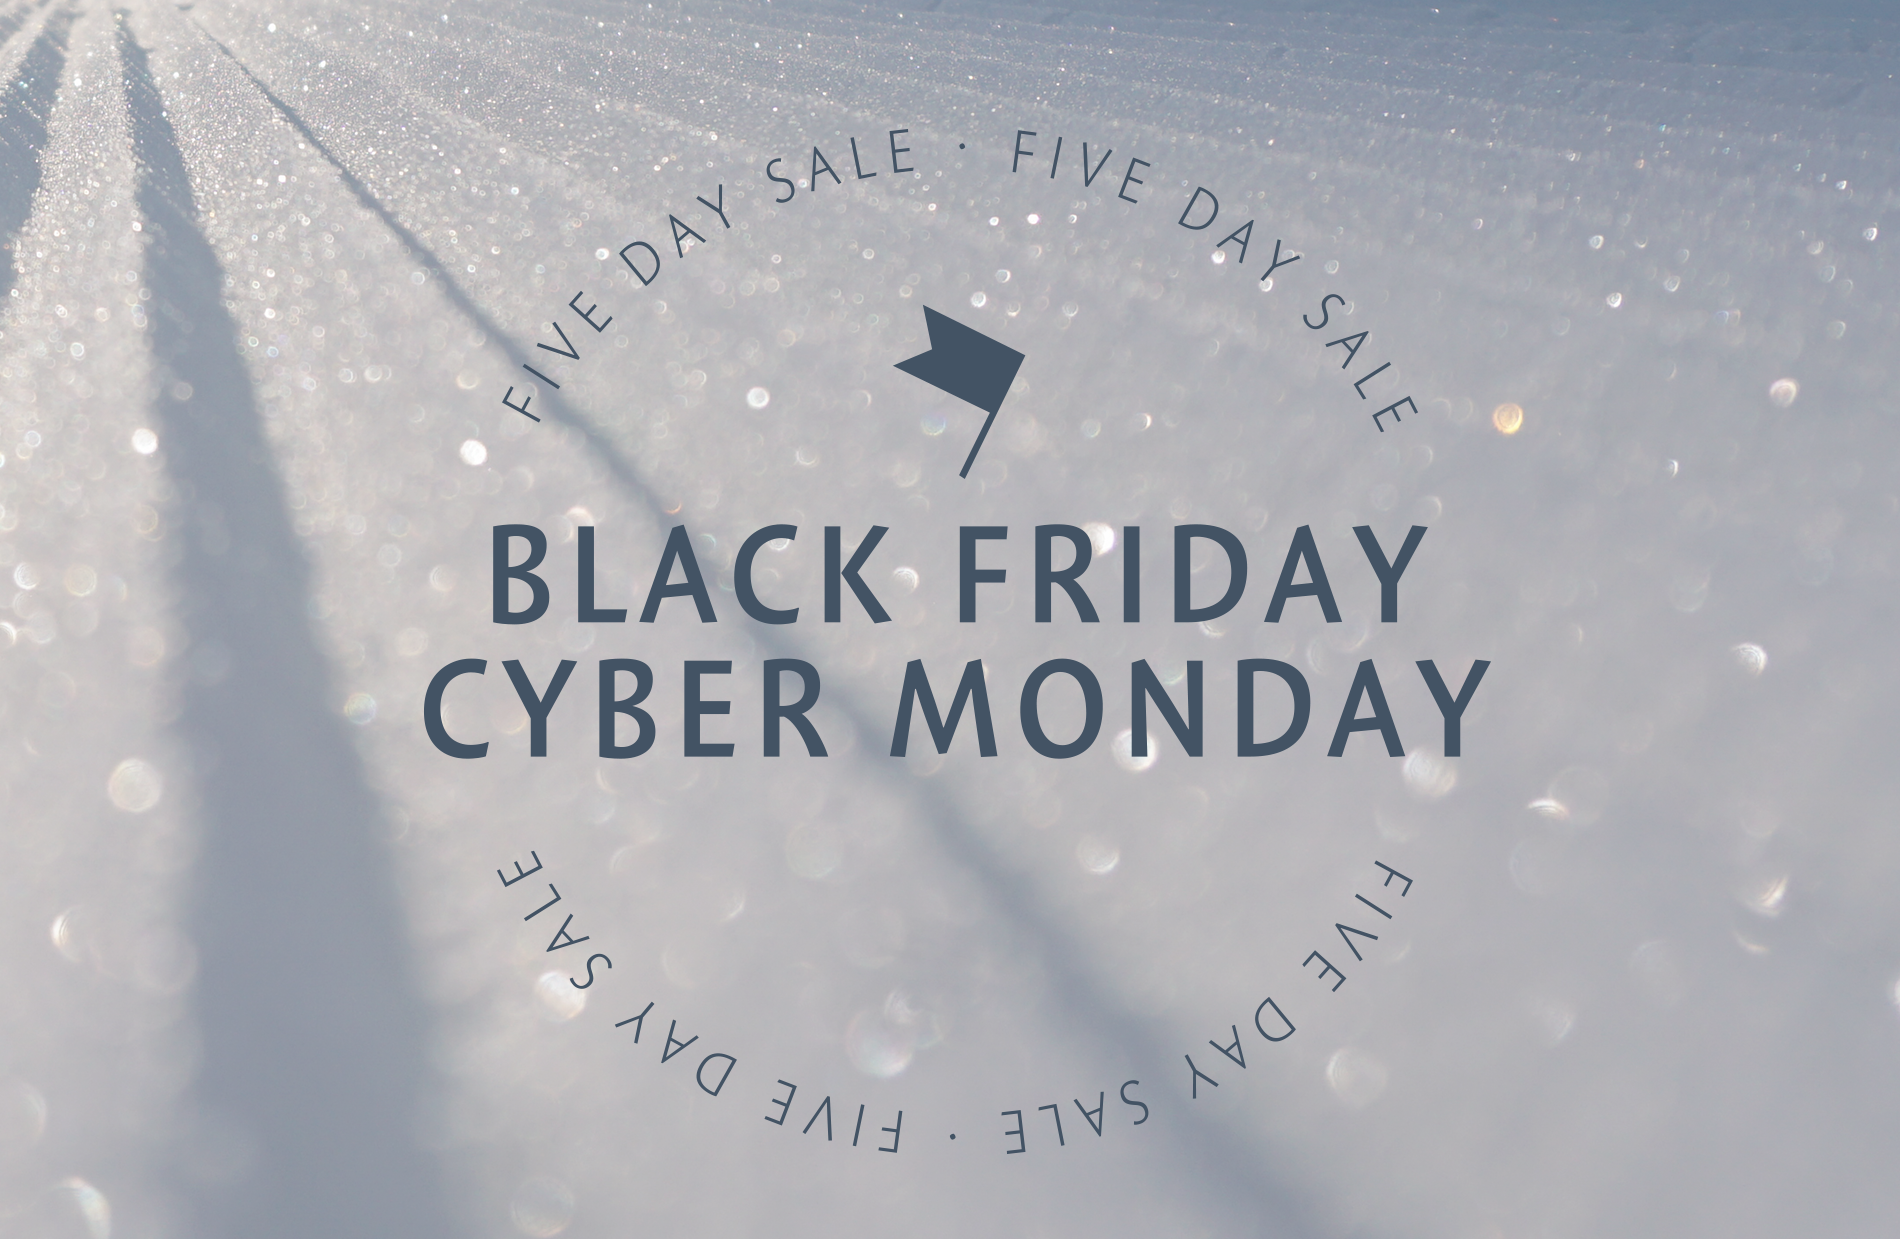 Black Friday Cyber Monday sale at Sunday River